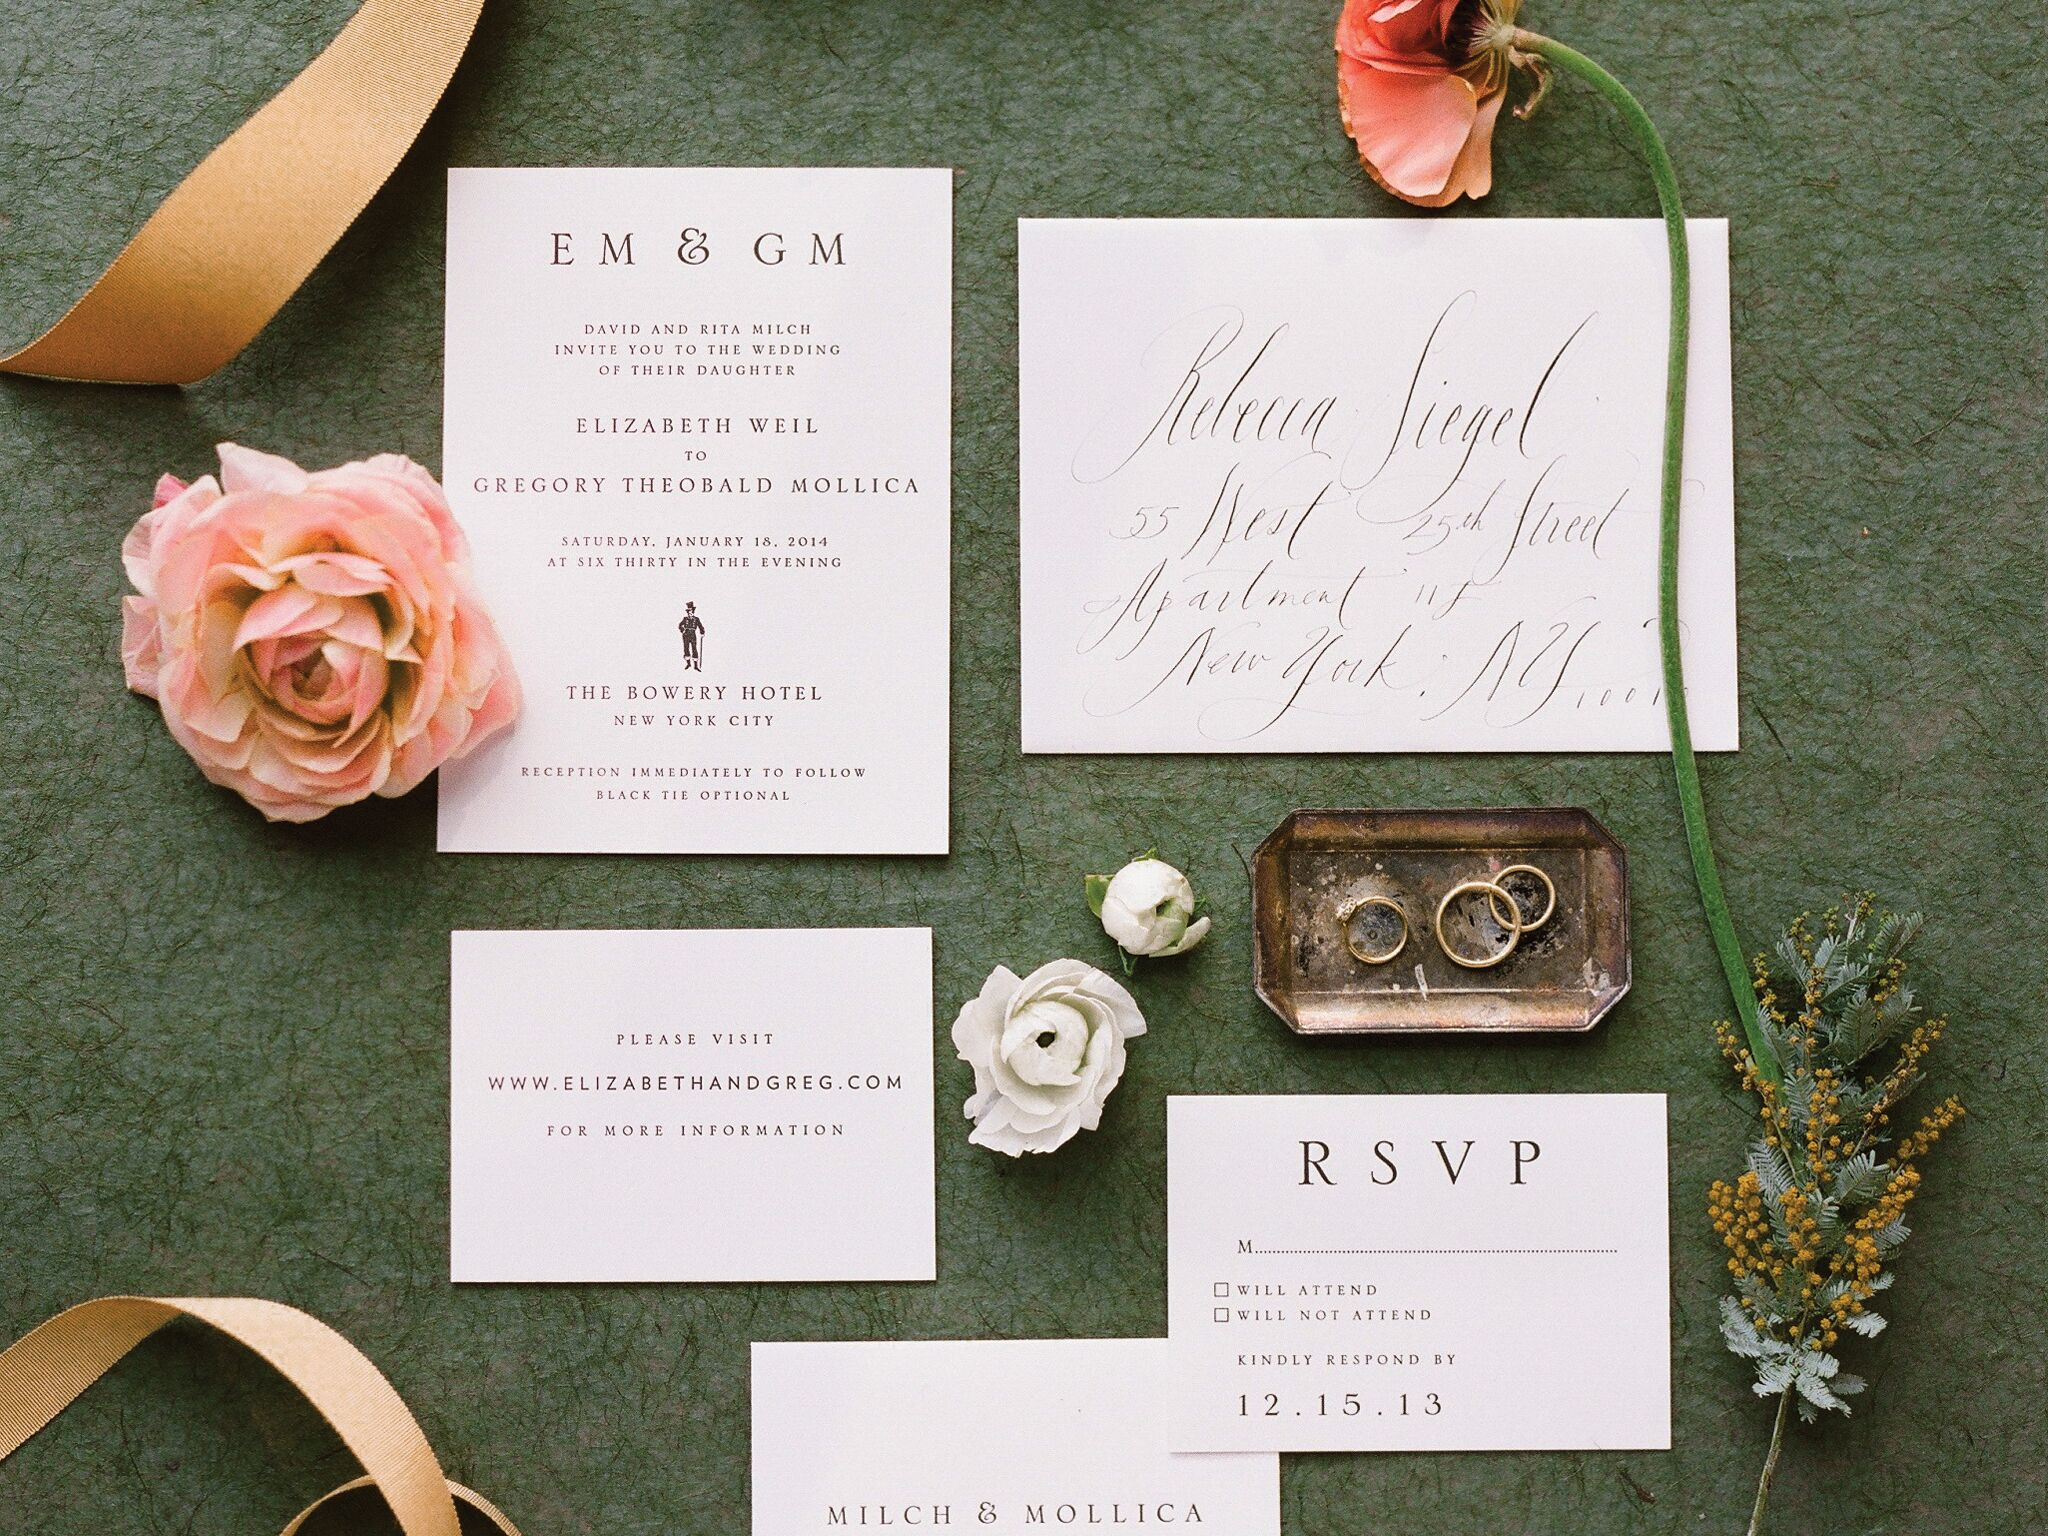 How To Write On Envelope For Wedding Invitations: Top 10 Wedding Invitation Etiquette Questions